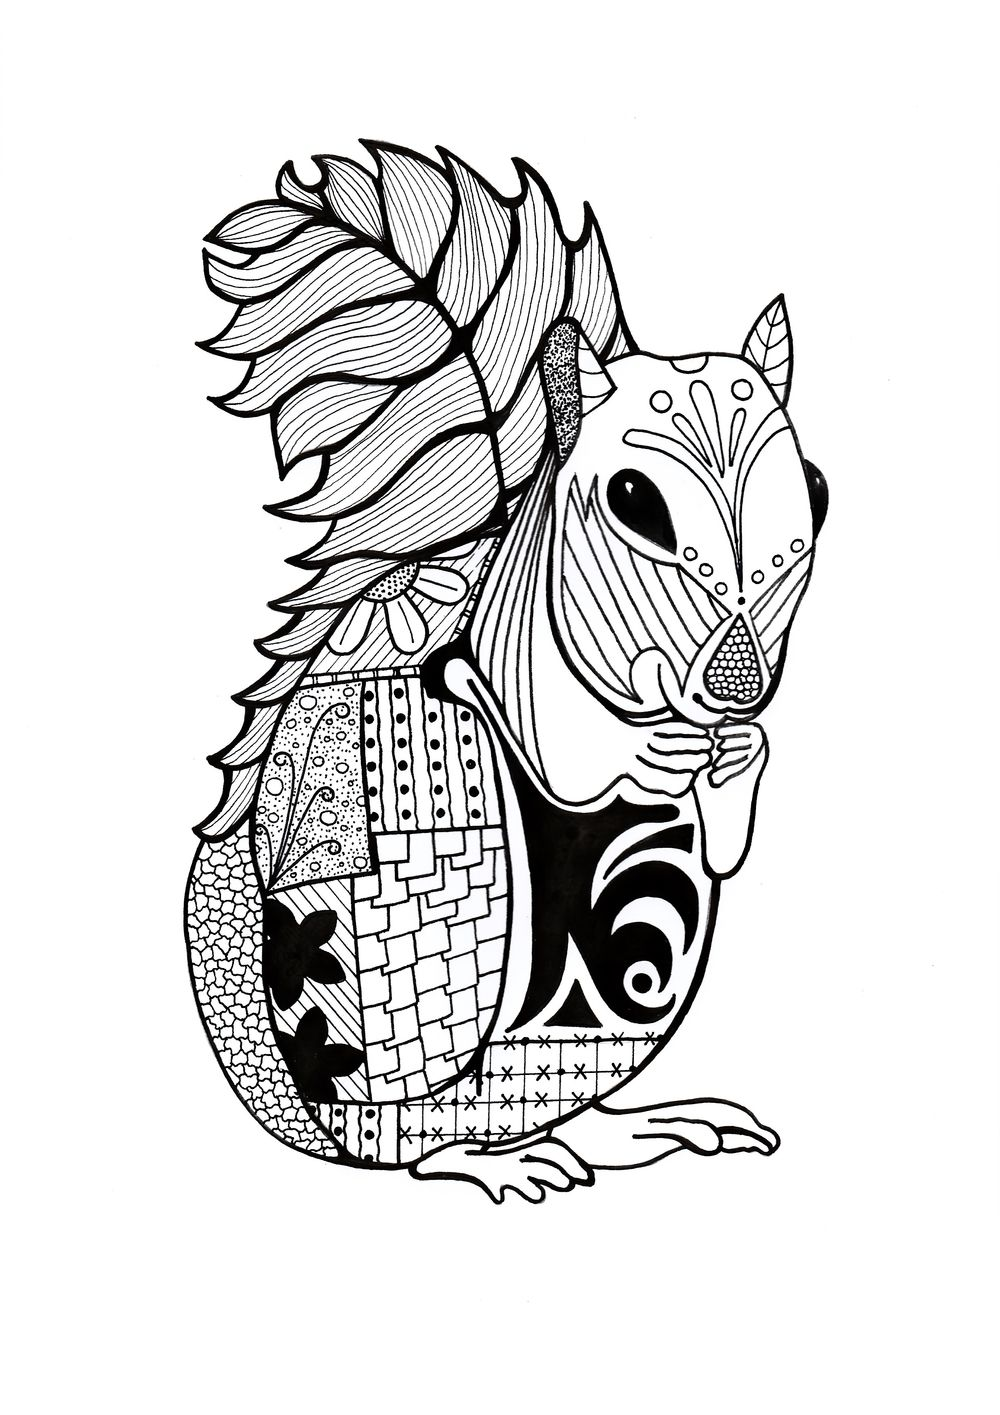 Intricate Squirrel Adult Coloring Page Animal coloring